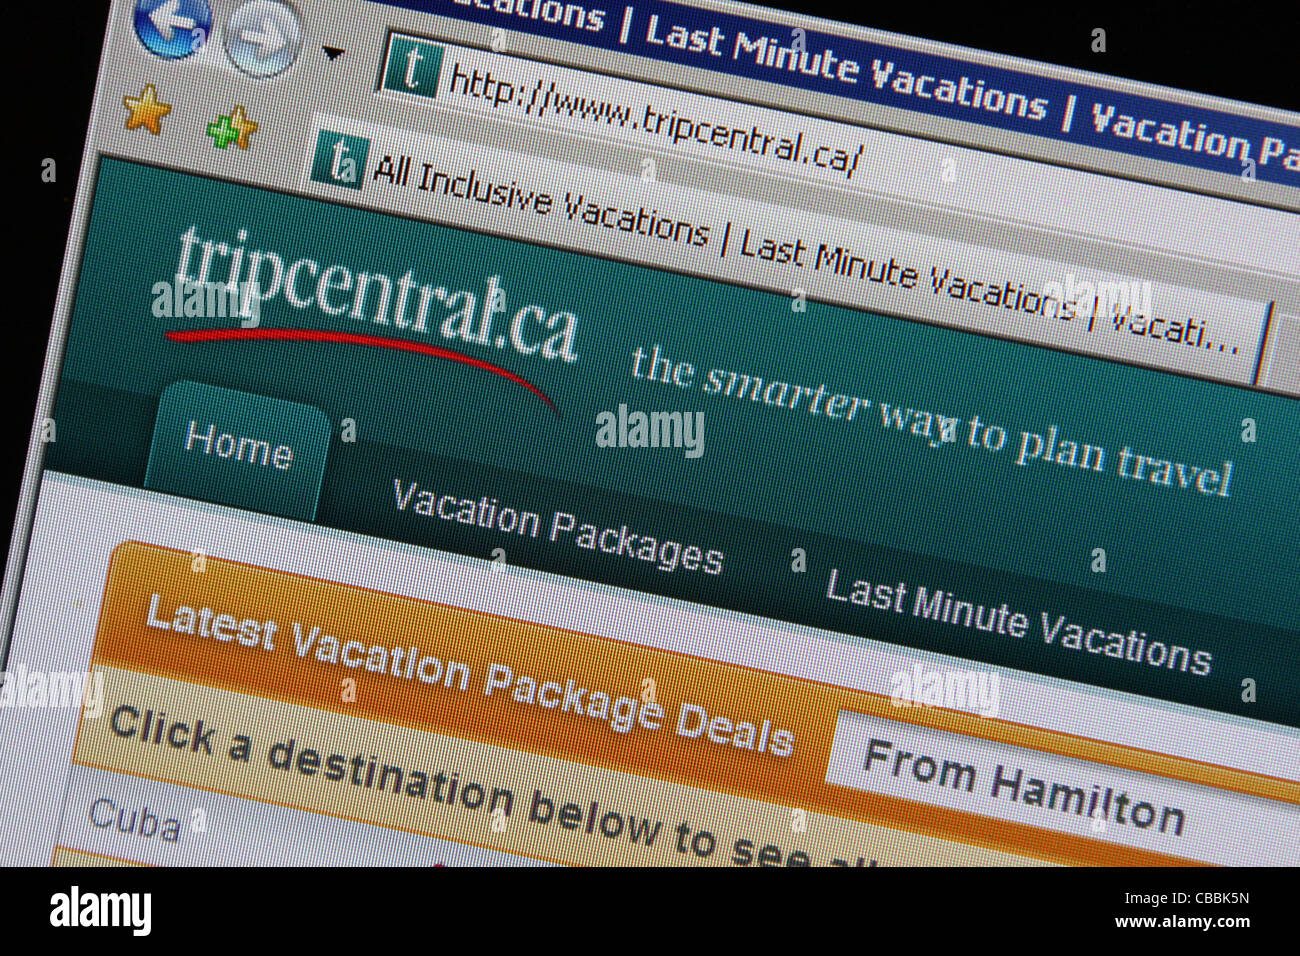 Tripcentral tripcentral.ca online travel website Immagini Stock